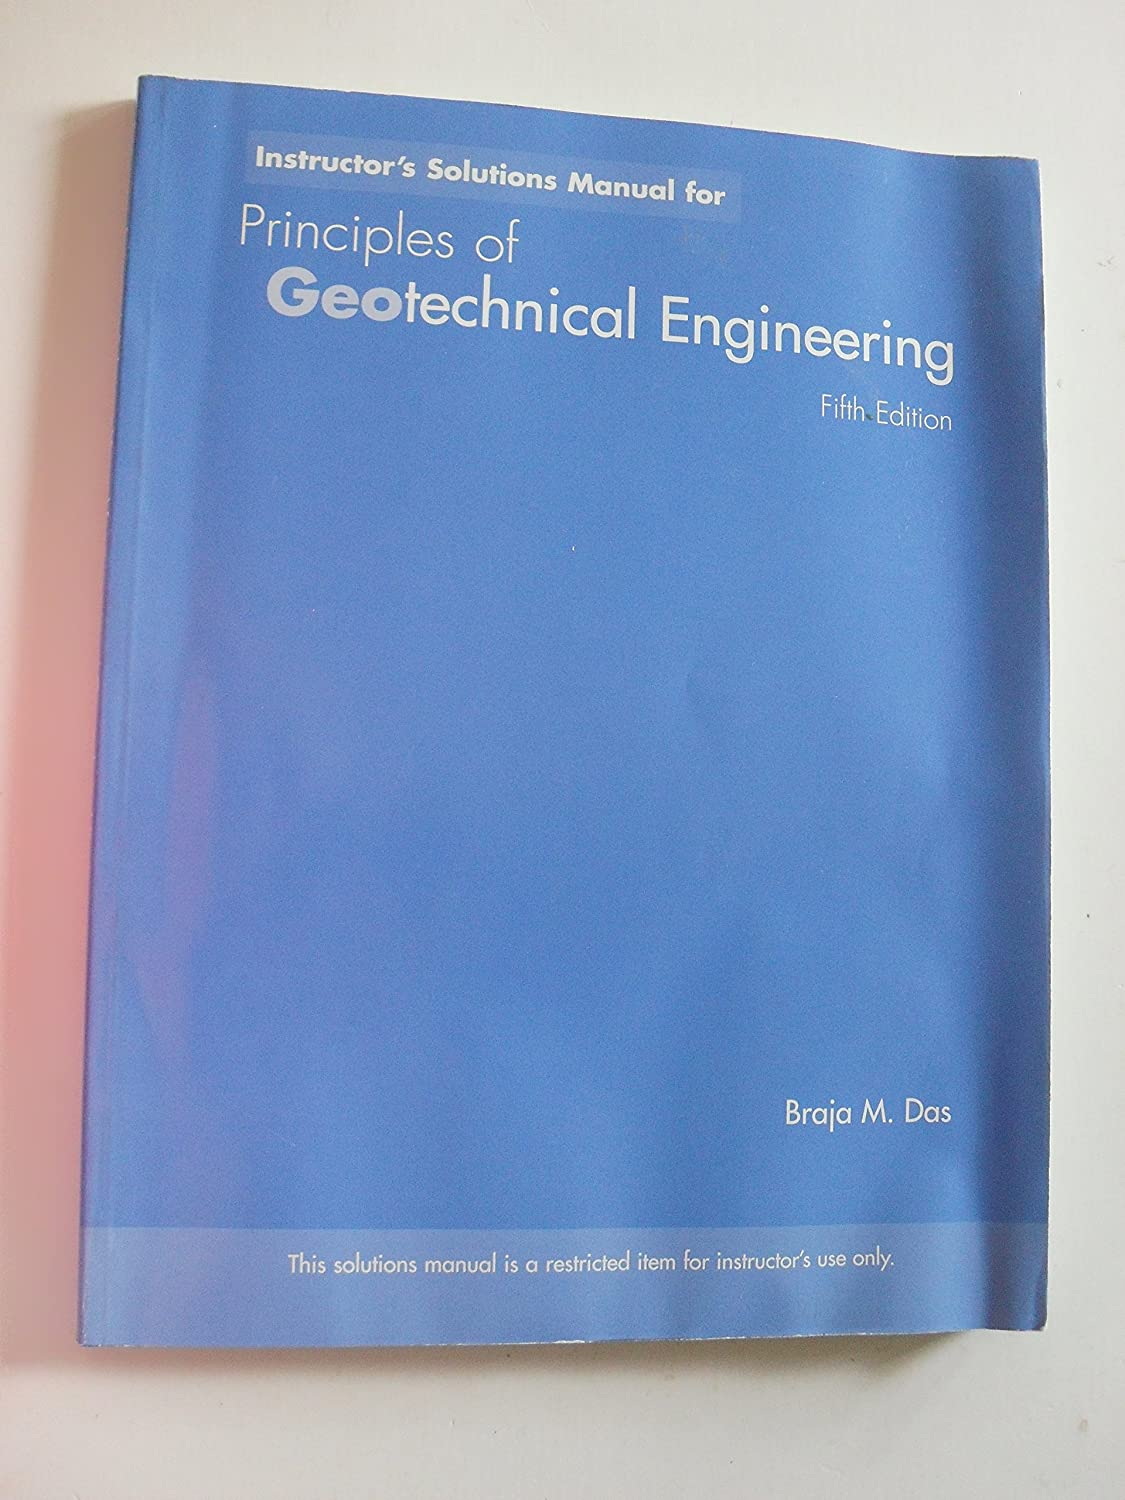 Amazon.com : Principles of Geotechnical engineering fifth edition by braja  m. das (Paperback) : Everything Else